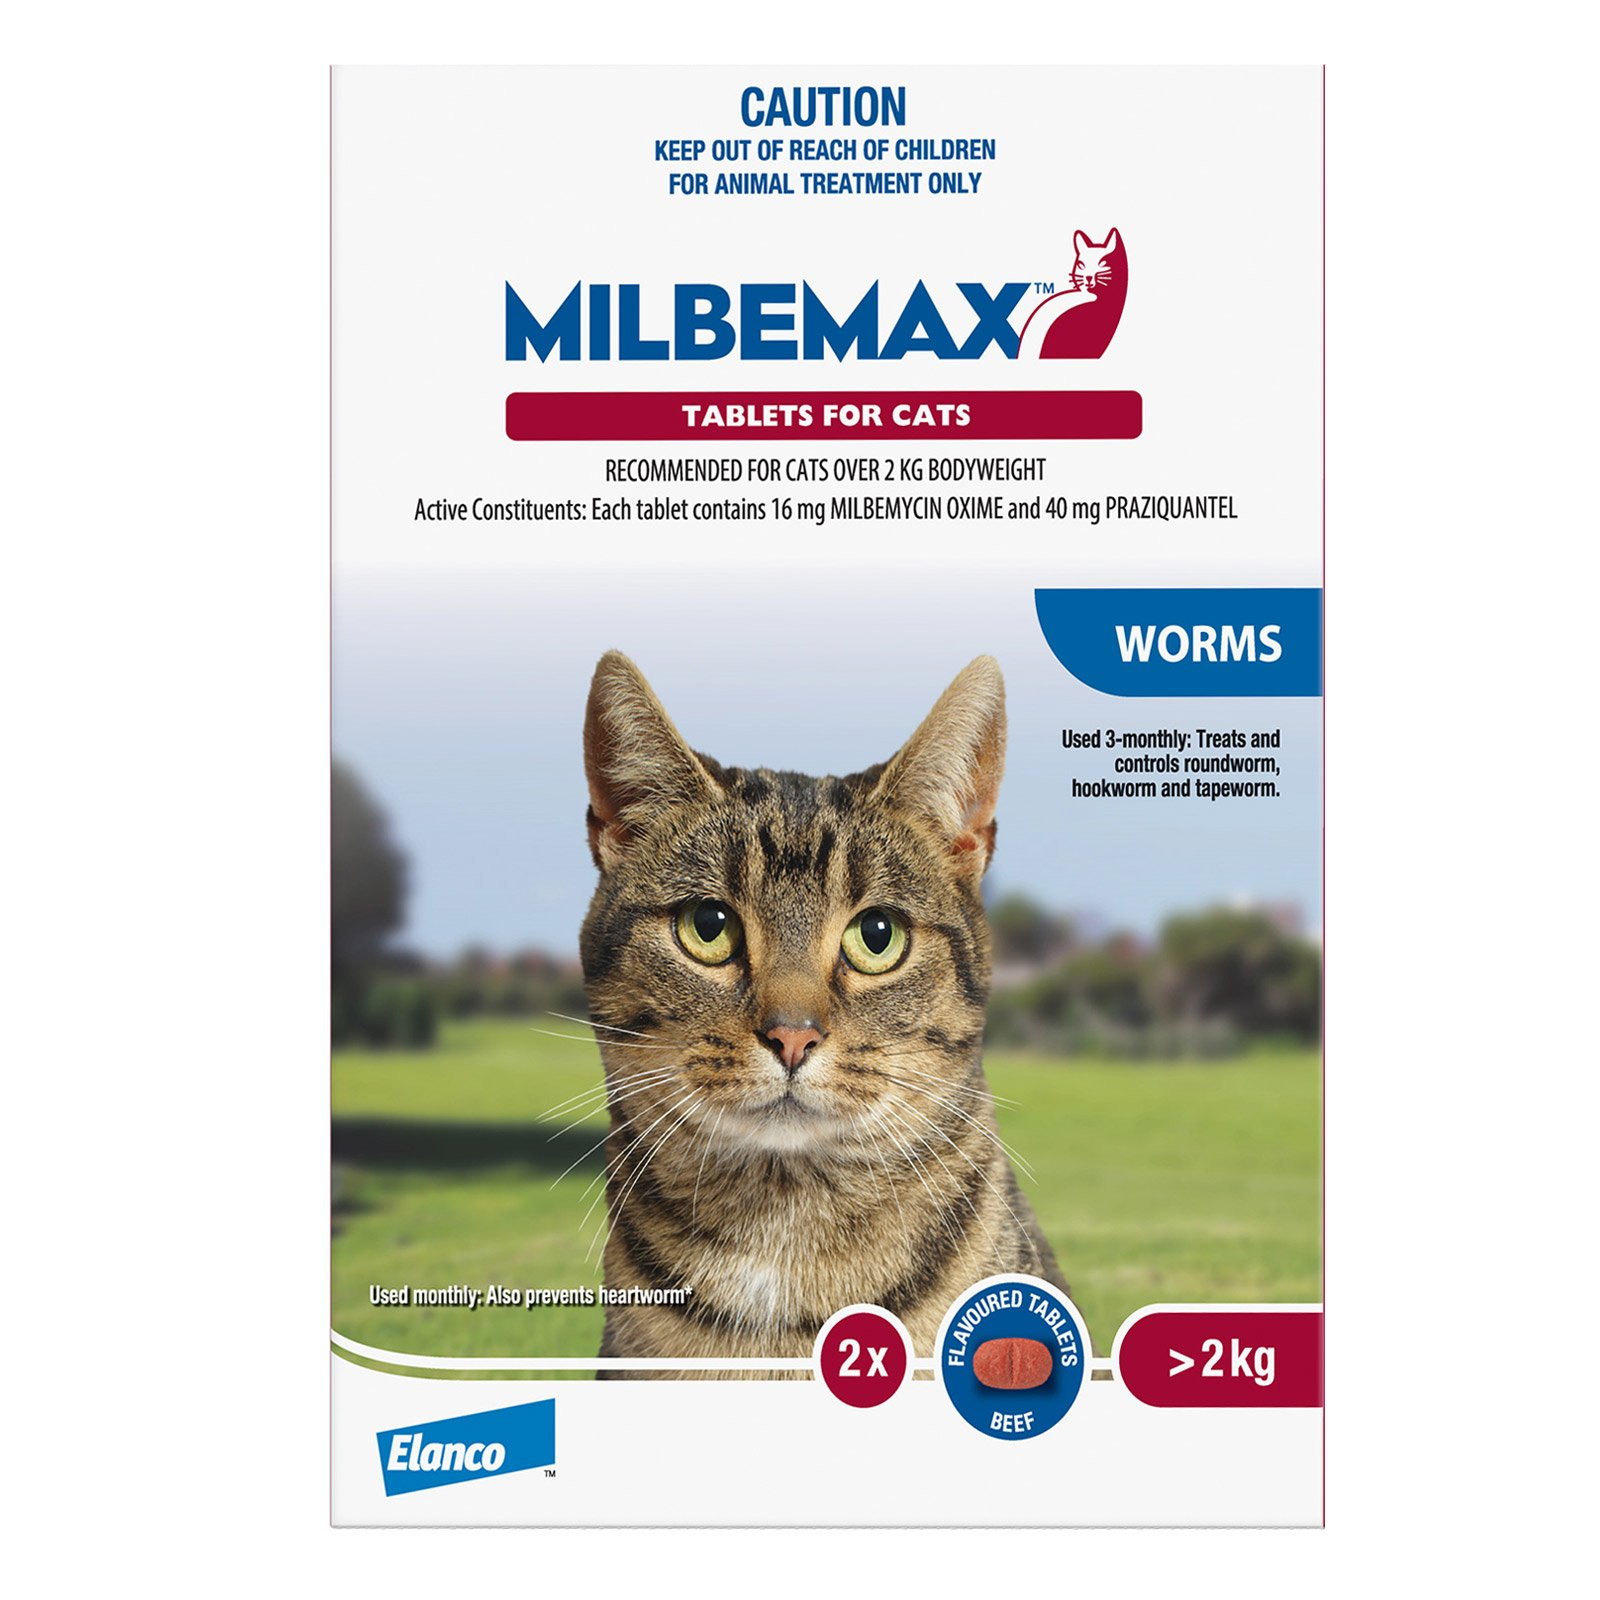 milbemax-allwormer-tablets-for-cats-milbemax-allwormer-tablets-for-large-cats-4-to-8-kg-2tabs.jpg